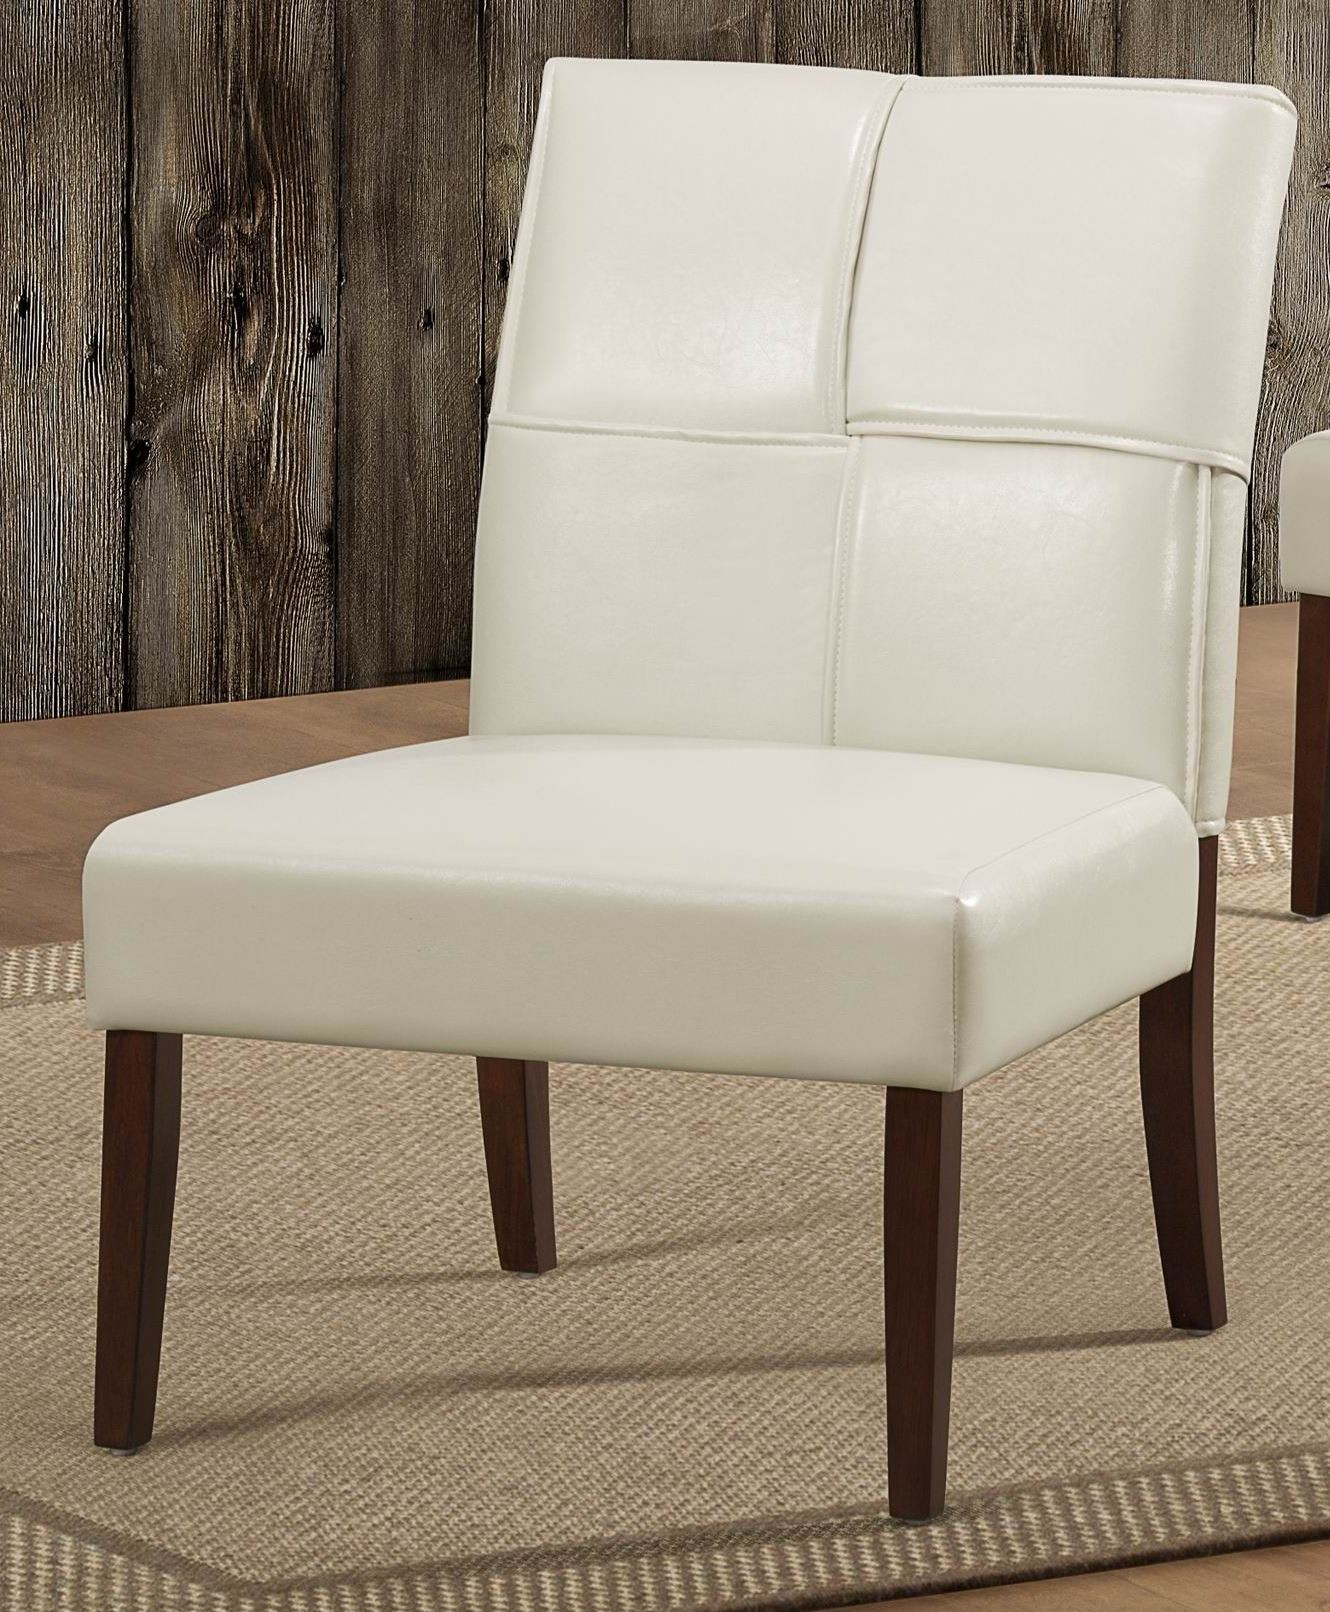 Cream Chairs Oriana Cream Accent Chair From Homelegance 1215crs